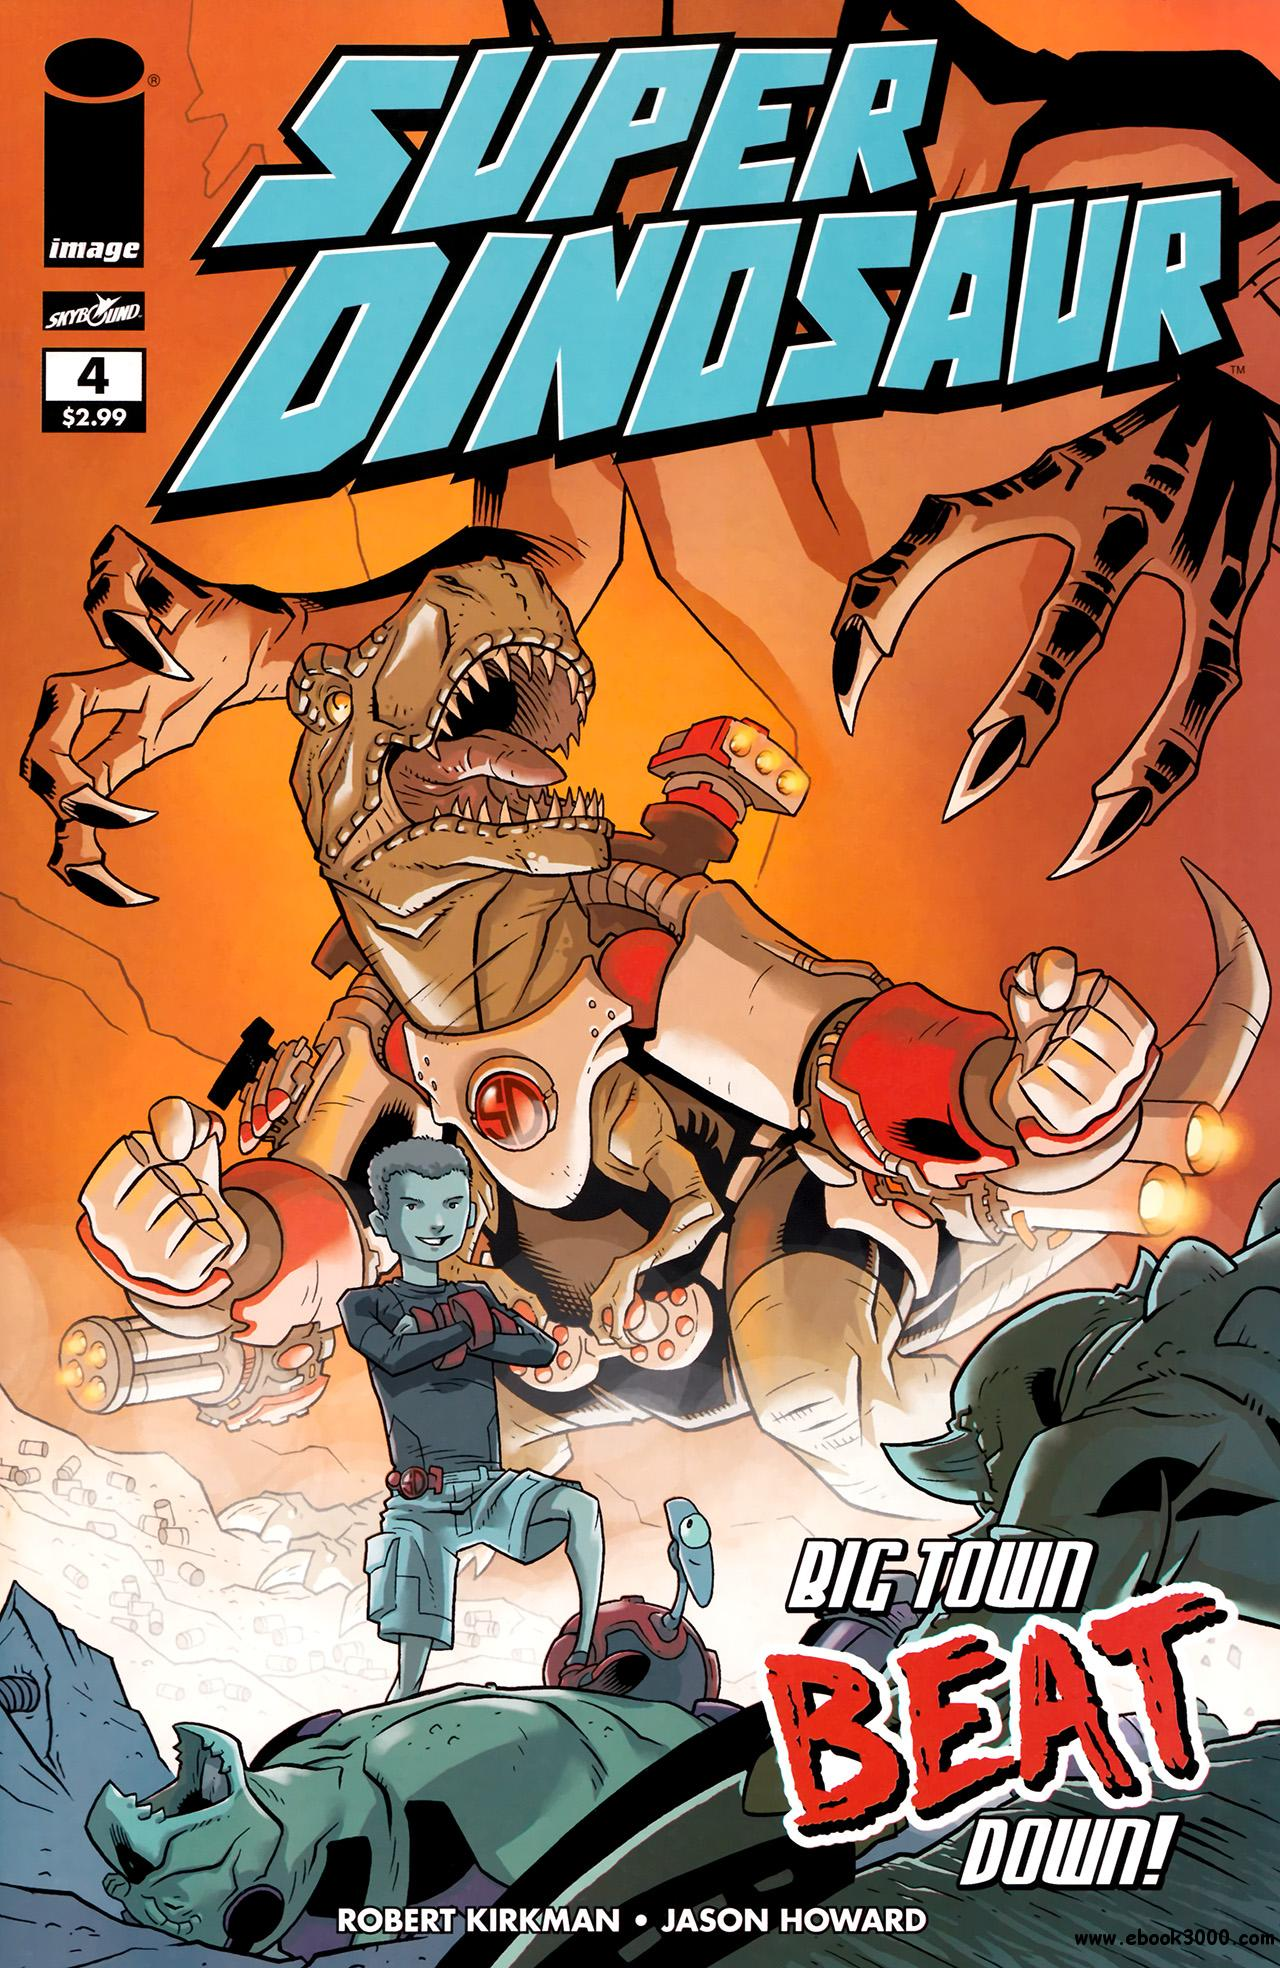 Super Dinosaur #4 (2011) free download